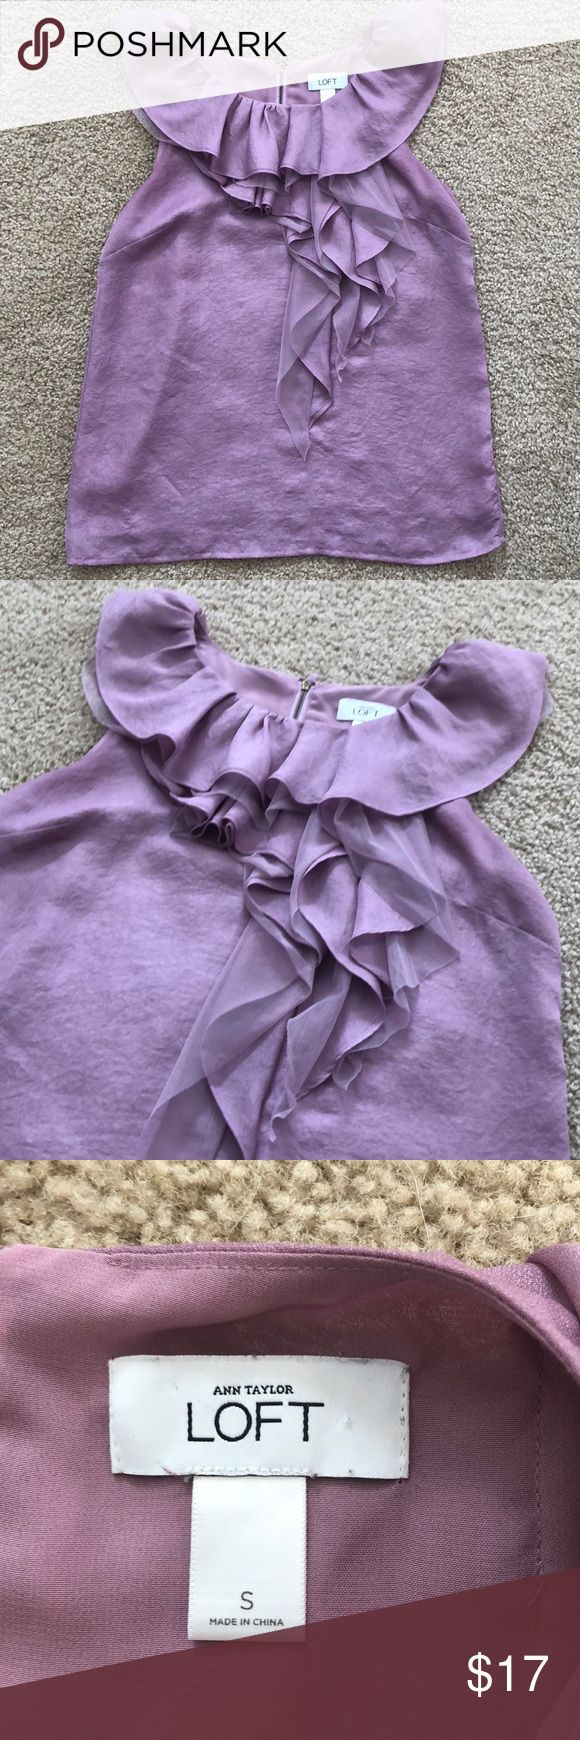 Ann Taylor LOFT Ruffled Tank Top This adorable purple tank top has ruffles in the front and a zipper in the back. Great condition! Ann Taylor Tops Tank Tops